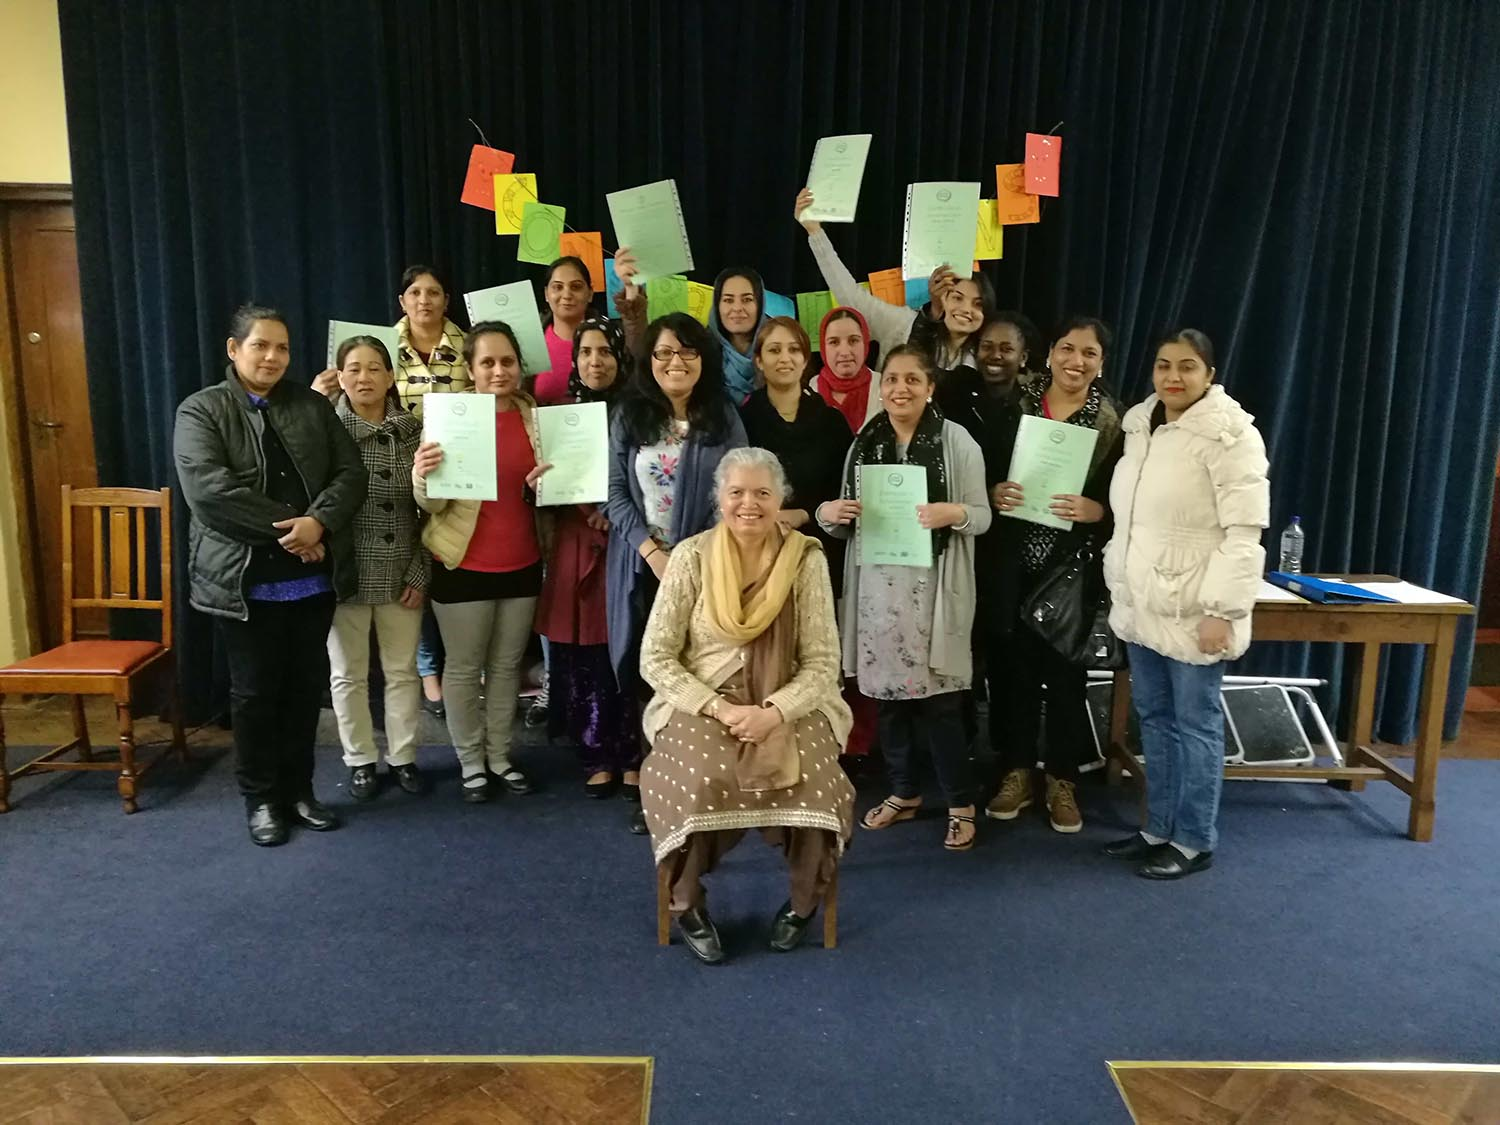 An ethnically diverse group of women standing together, proudly holding up green pieces of paper.